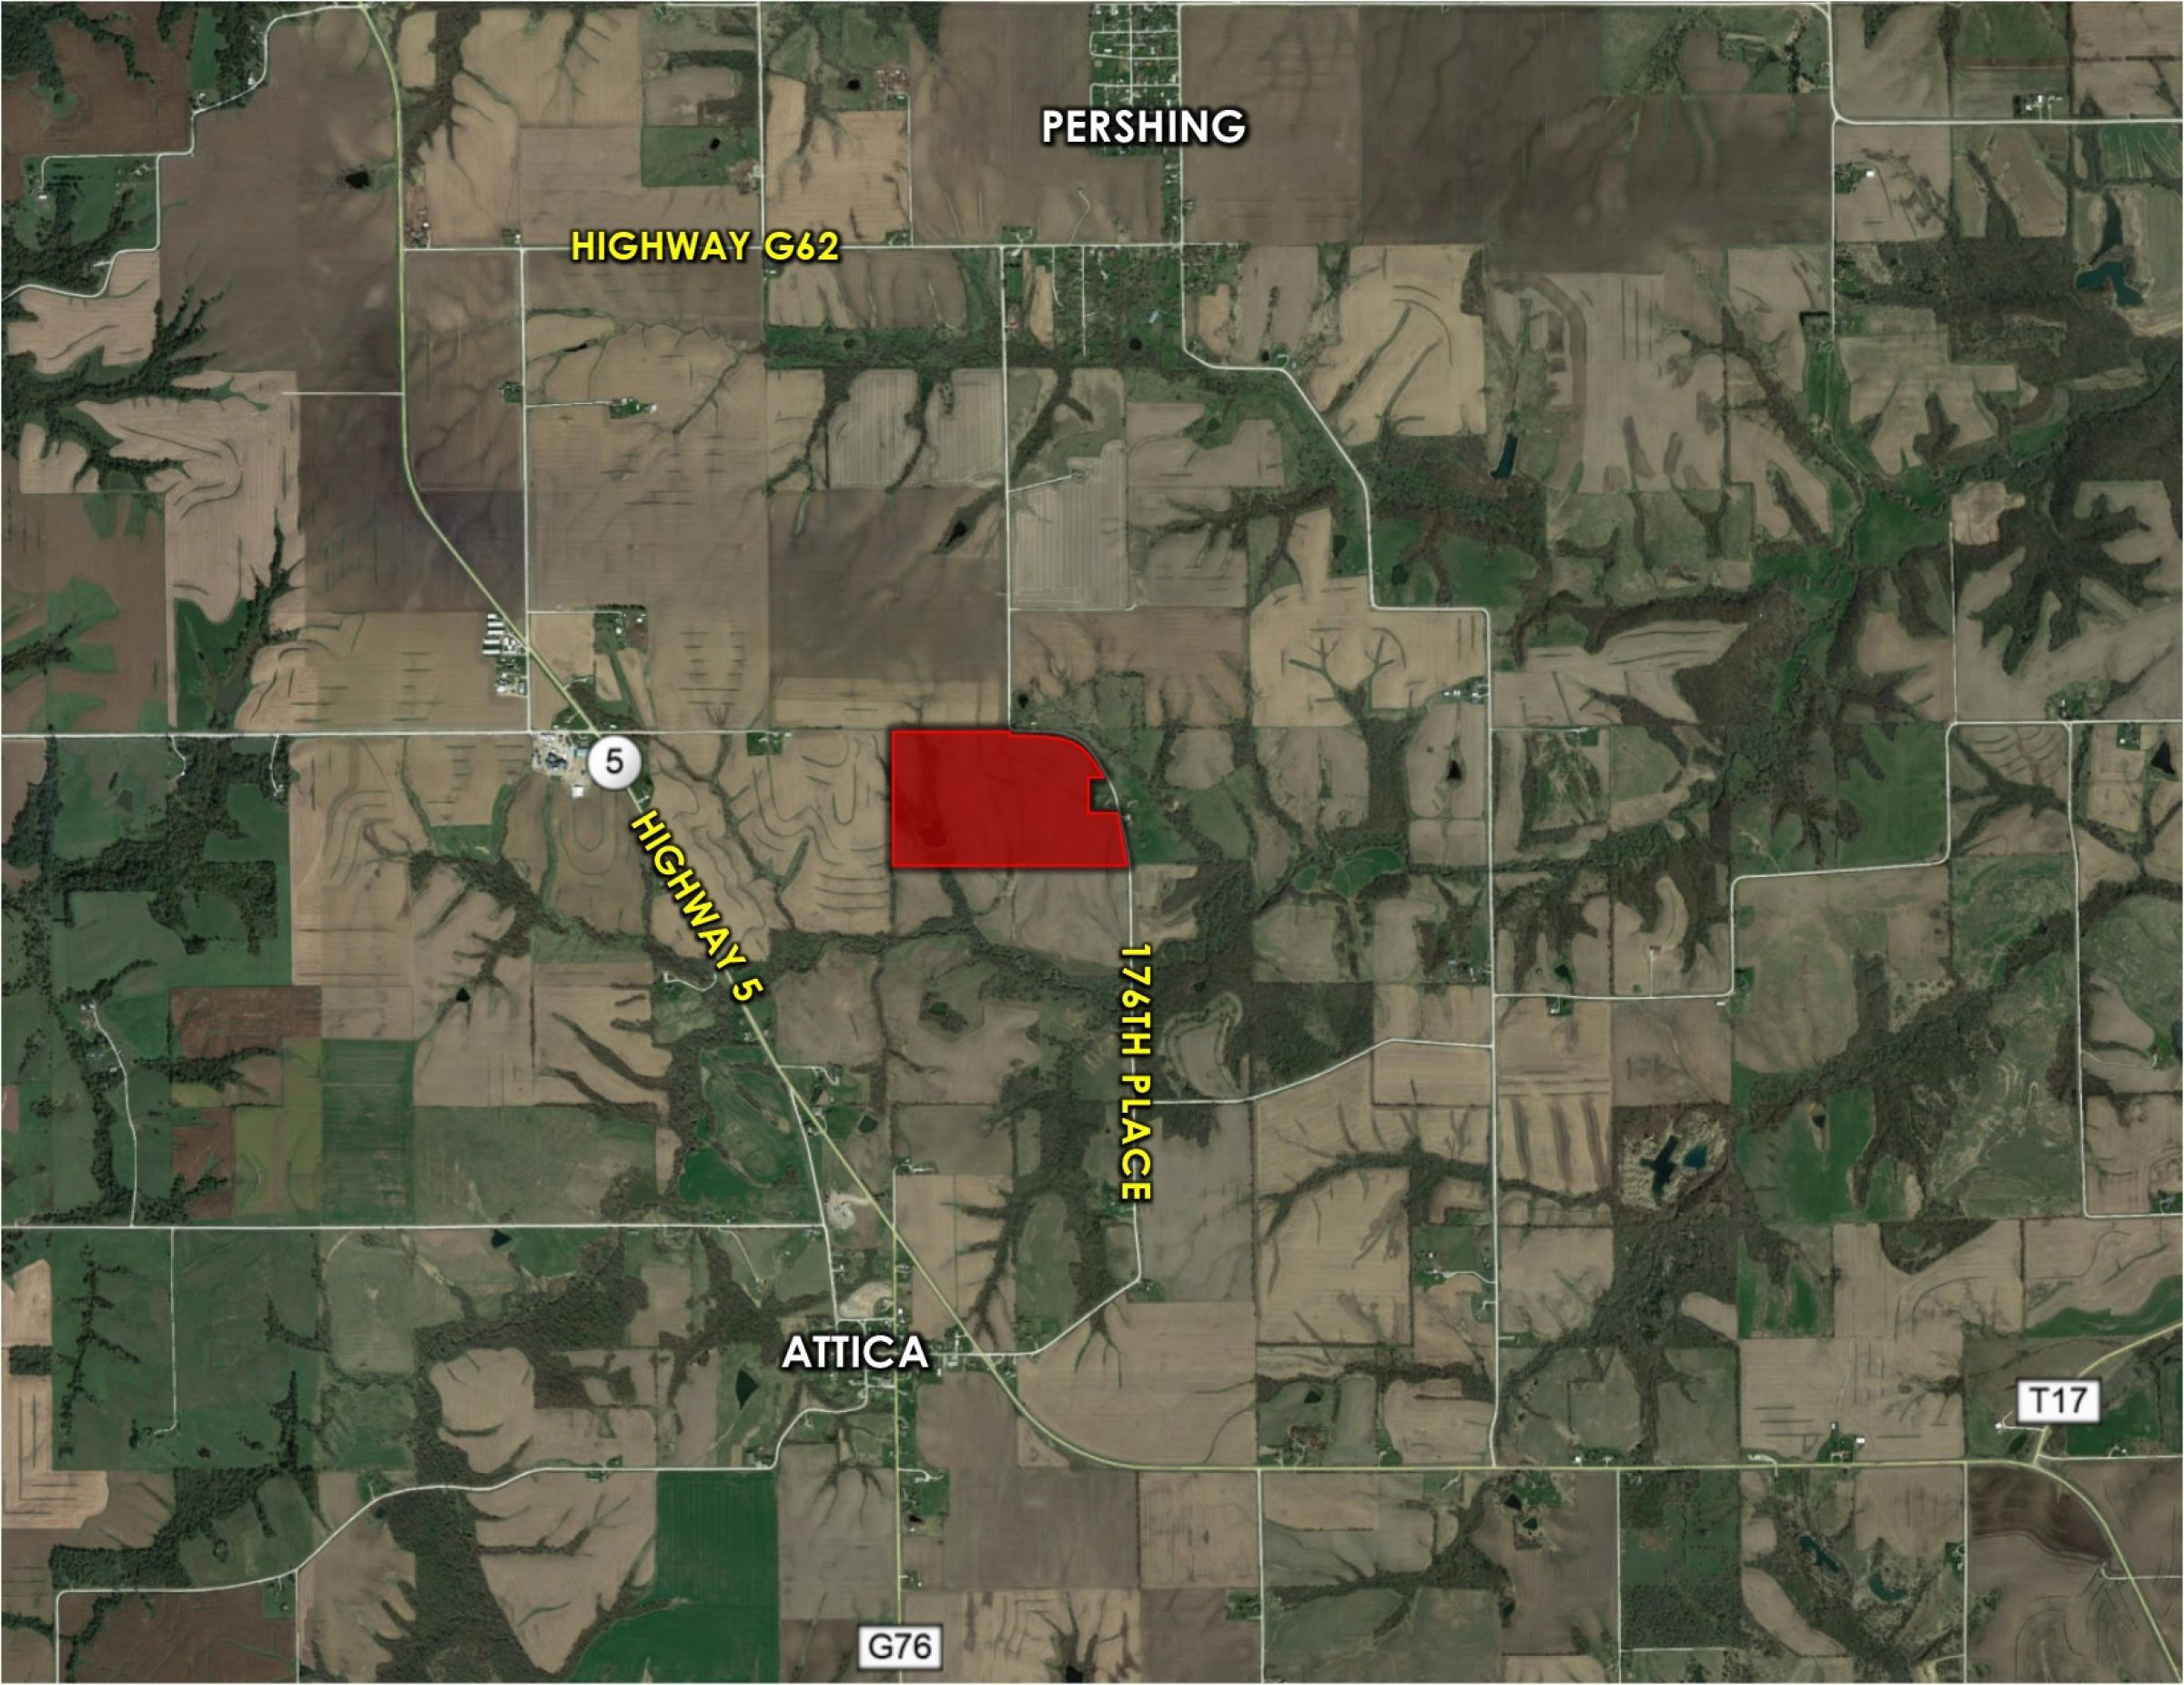 auctions-land-marion-county-iowa-78-acres-listing-number-15197-1-2020-10-06-154849.jpg